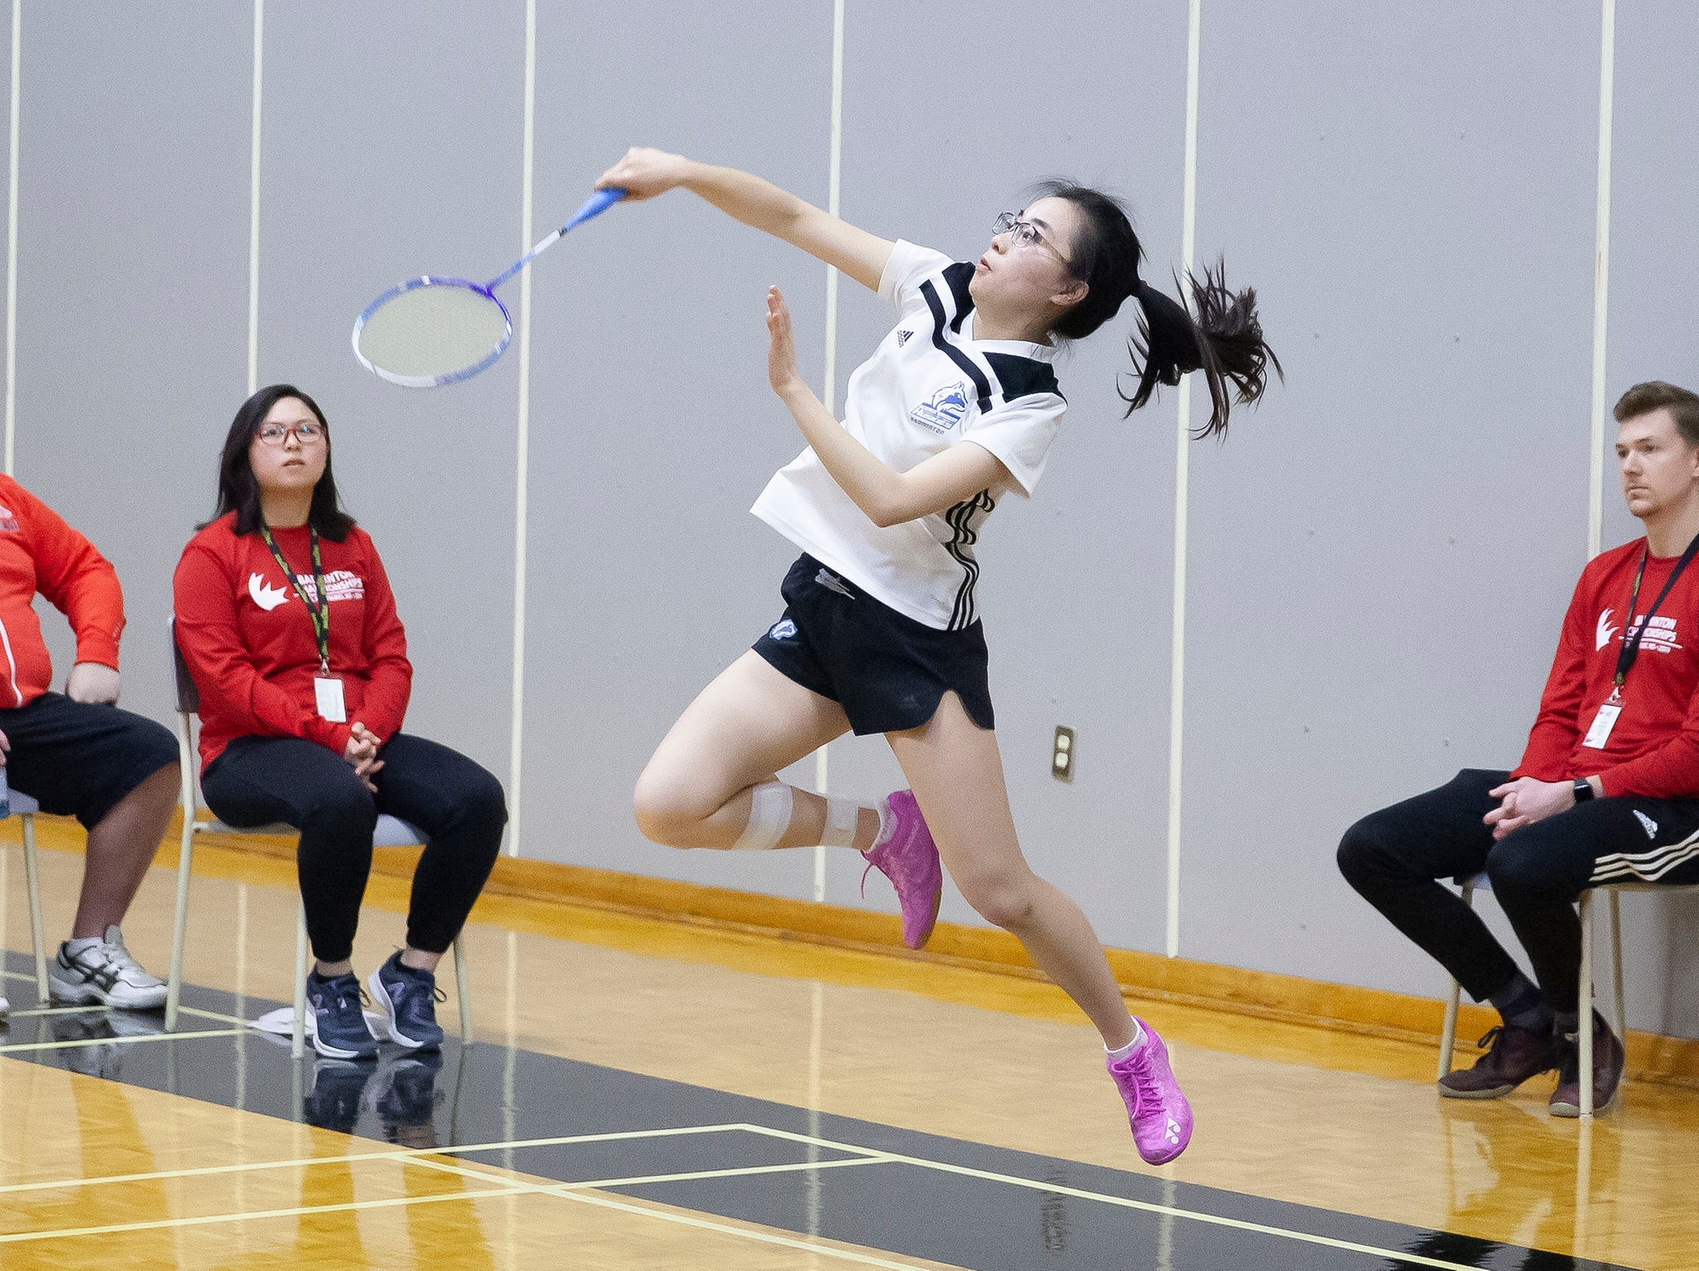 PAIR OF NATIONAL SILVER MEDALS CAP SUCCESSFUL 2018/19 CAMPAIGN FOR HUSKIES BADMINTON